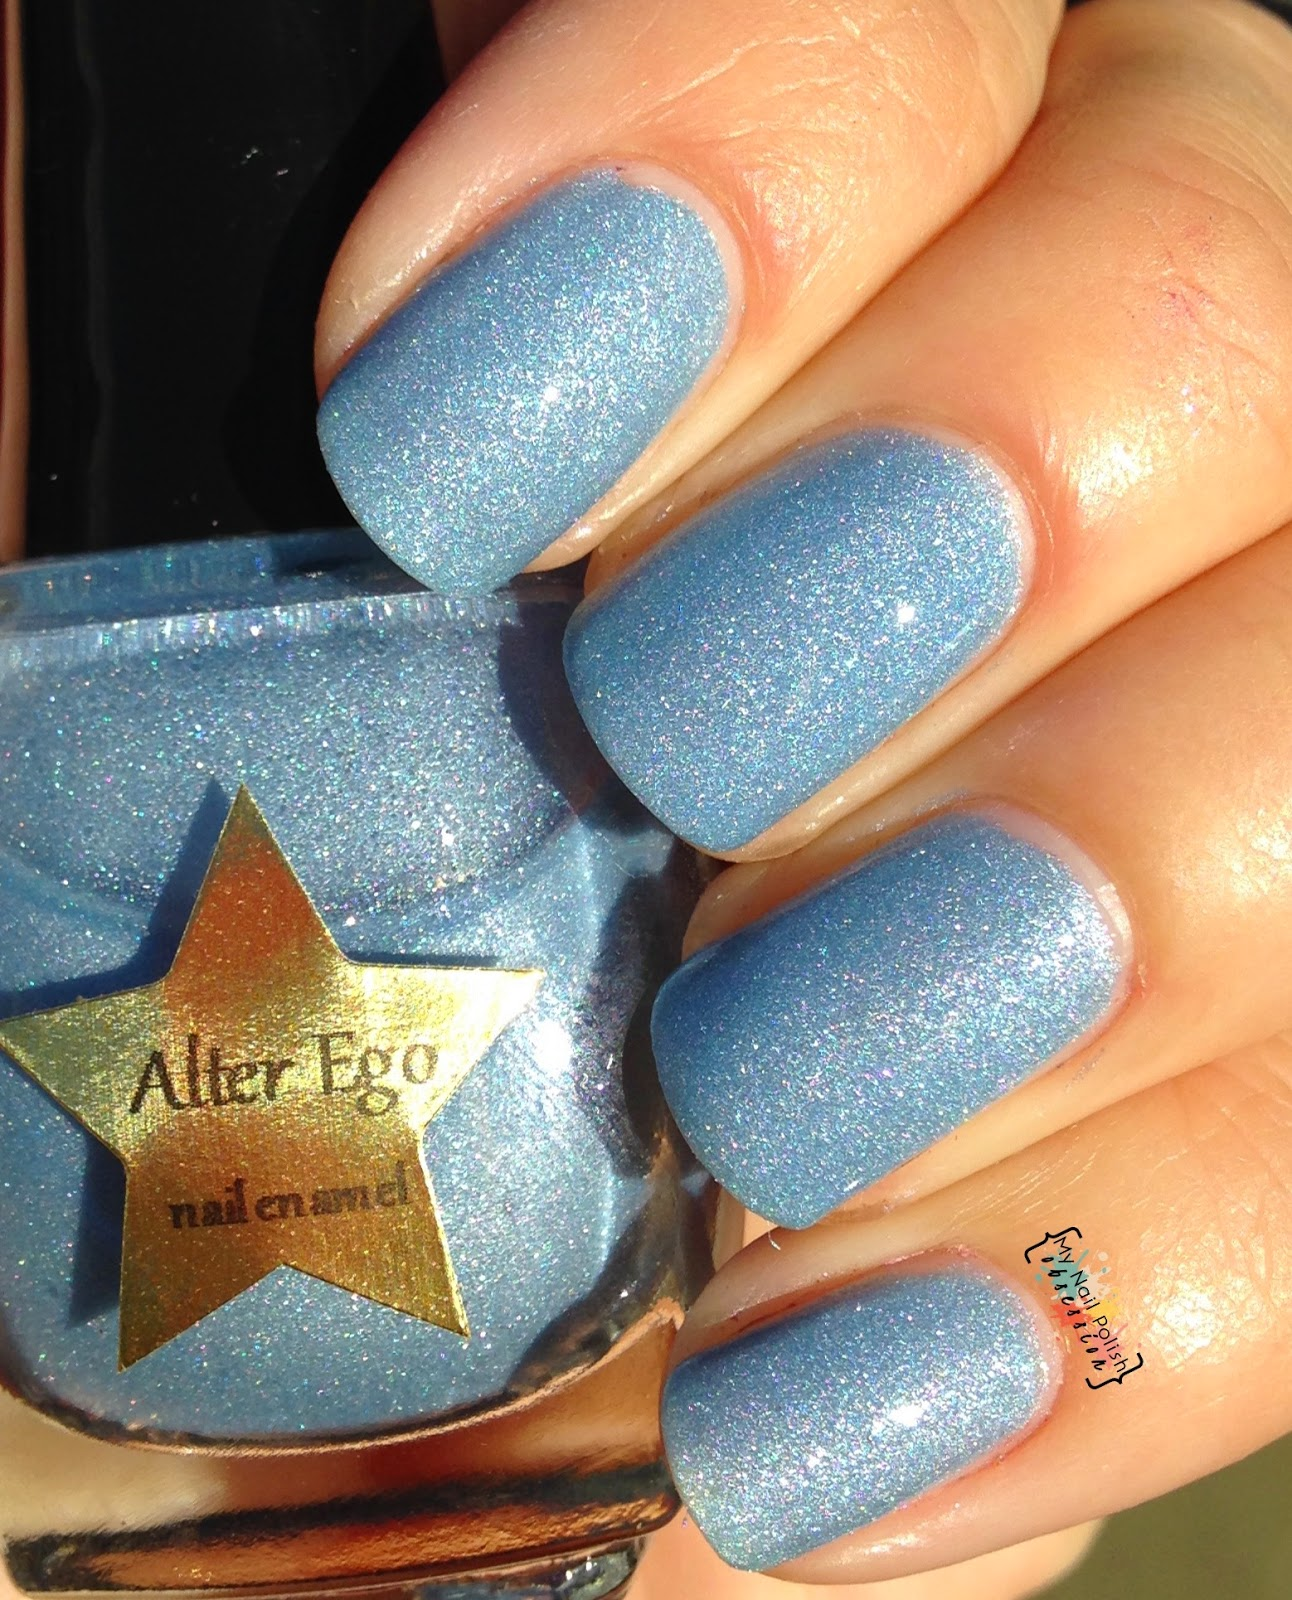 Alter Ego Frost Fairy